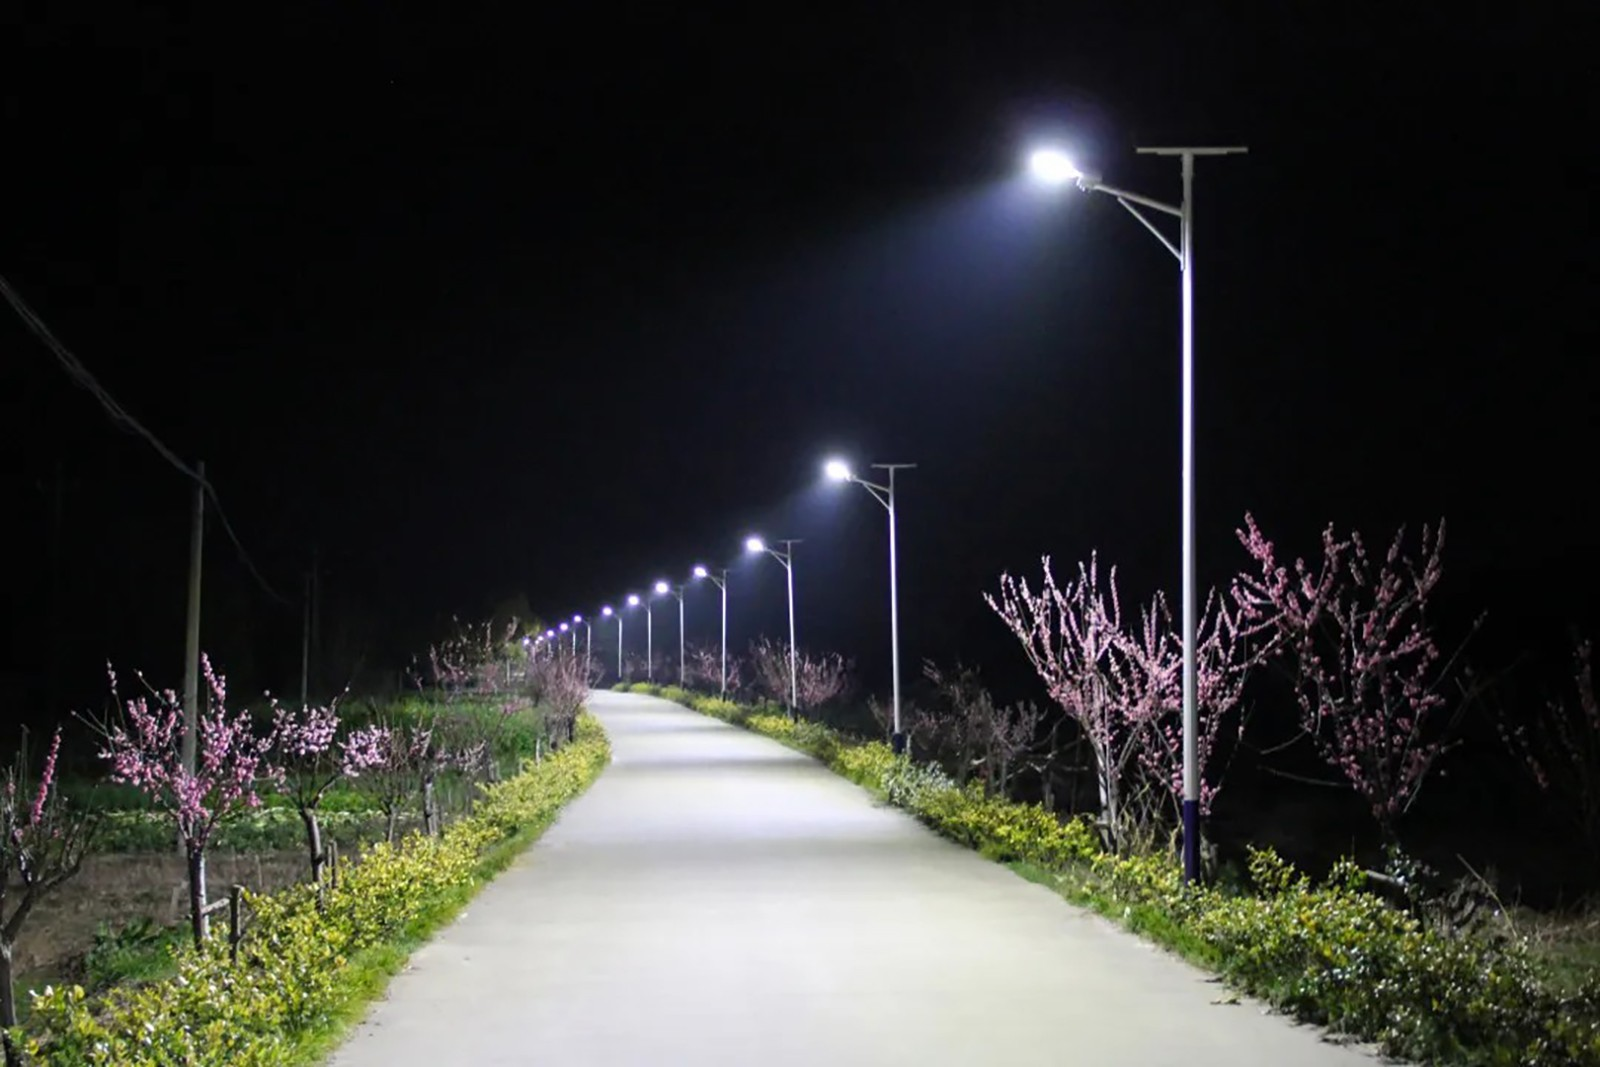 Chz Lighting Helps Beautiful Village Lighting Project In South Taihu New